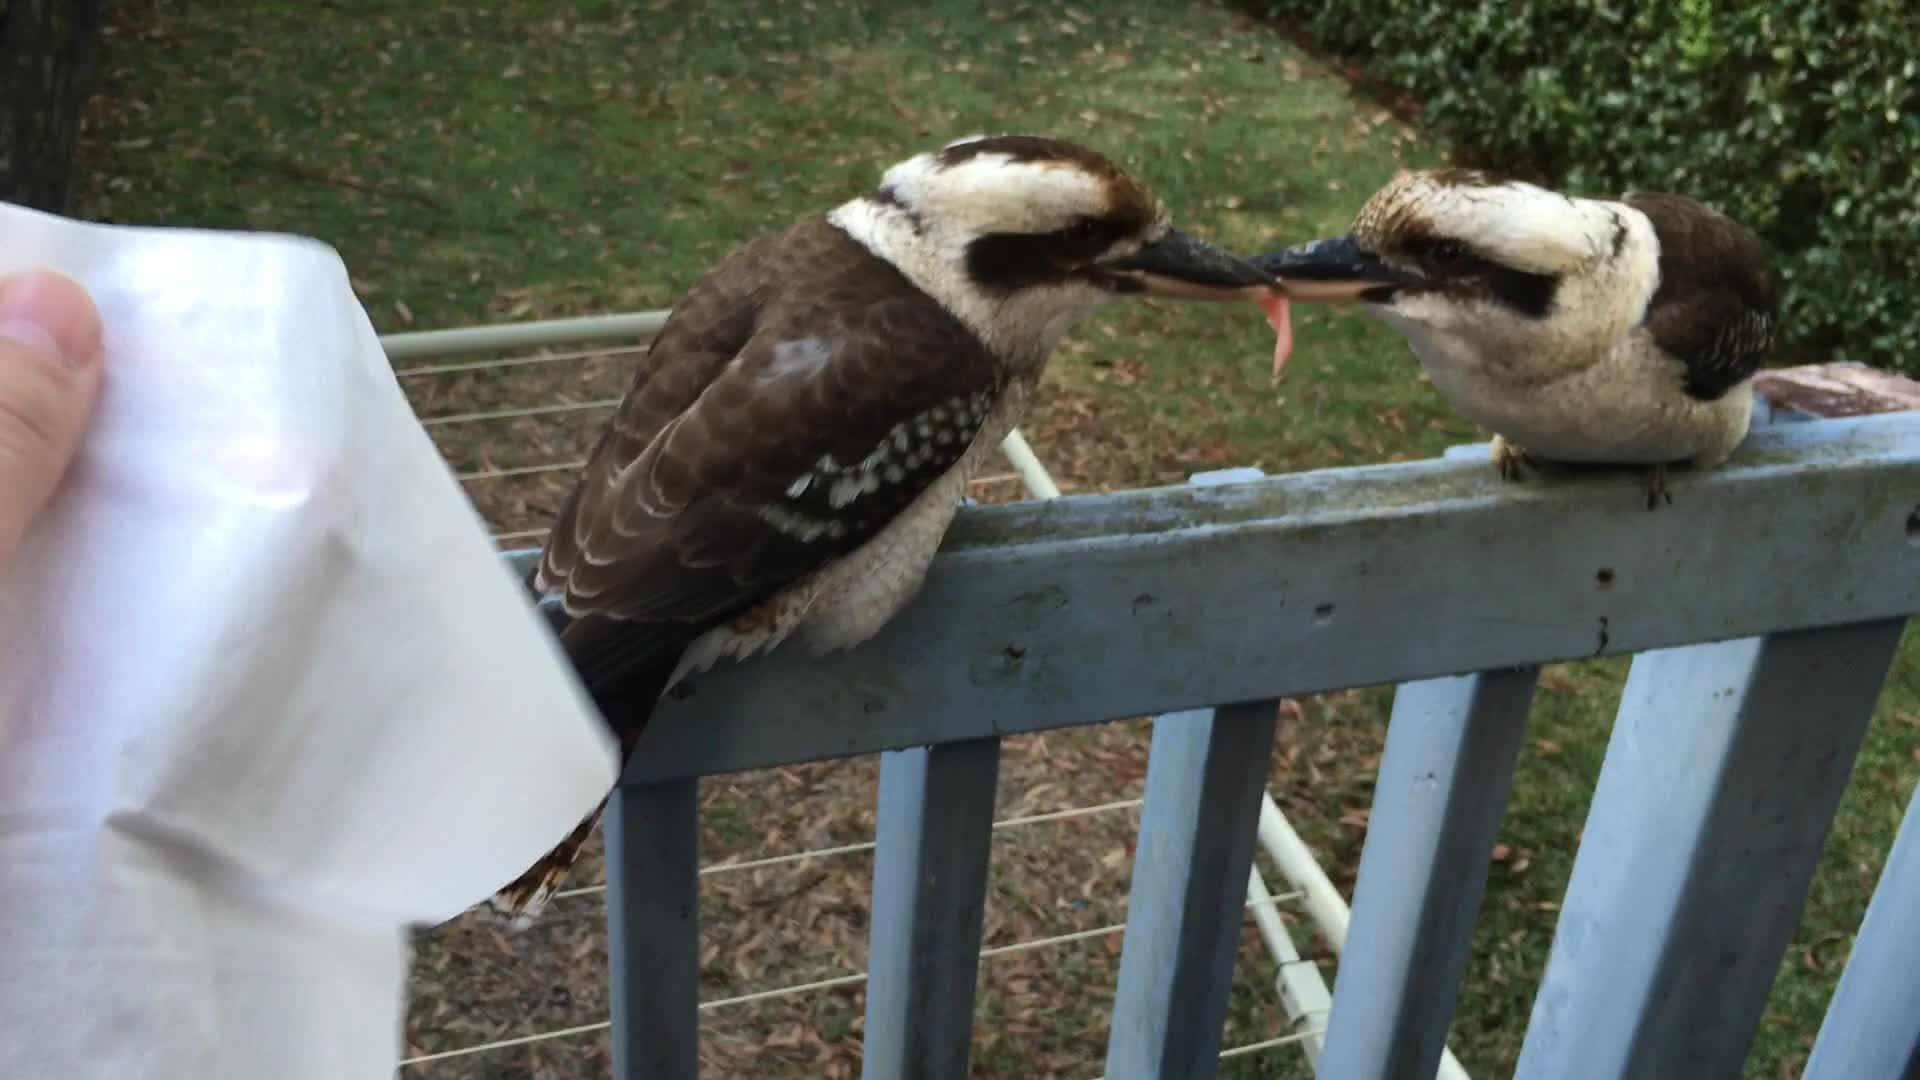 Aussie kookaburras not giving up on a tug-of-war. GIF ... - photo#6